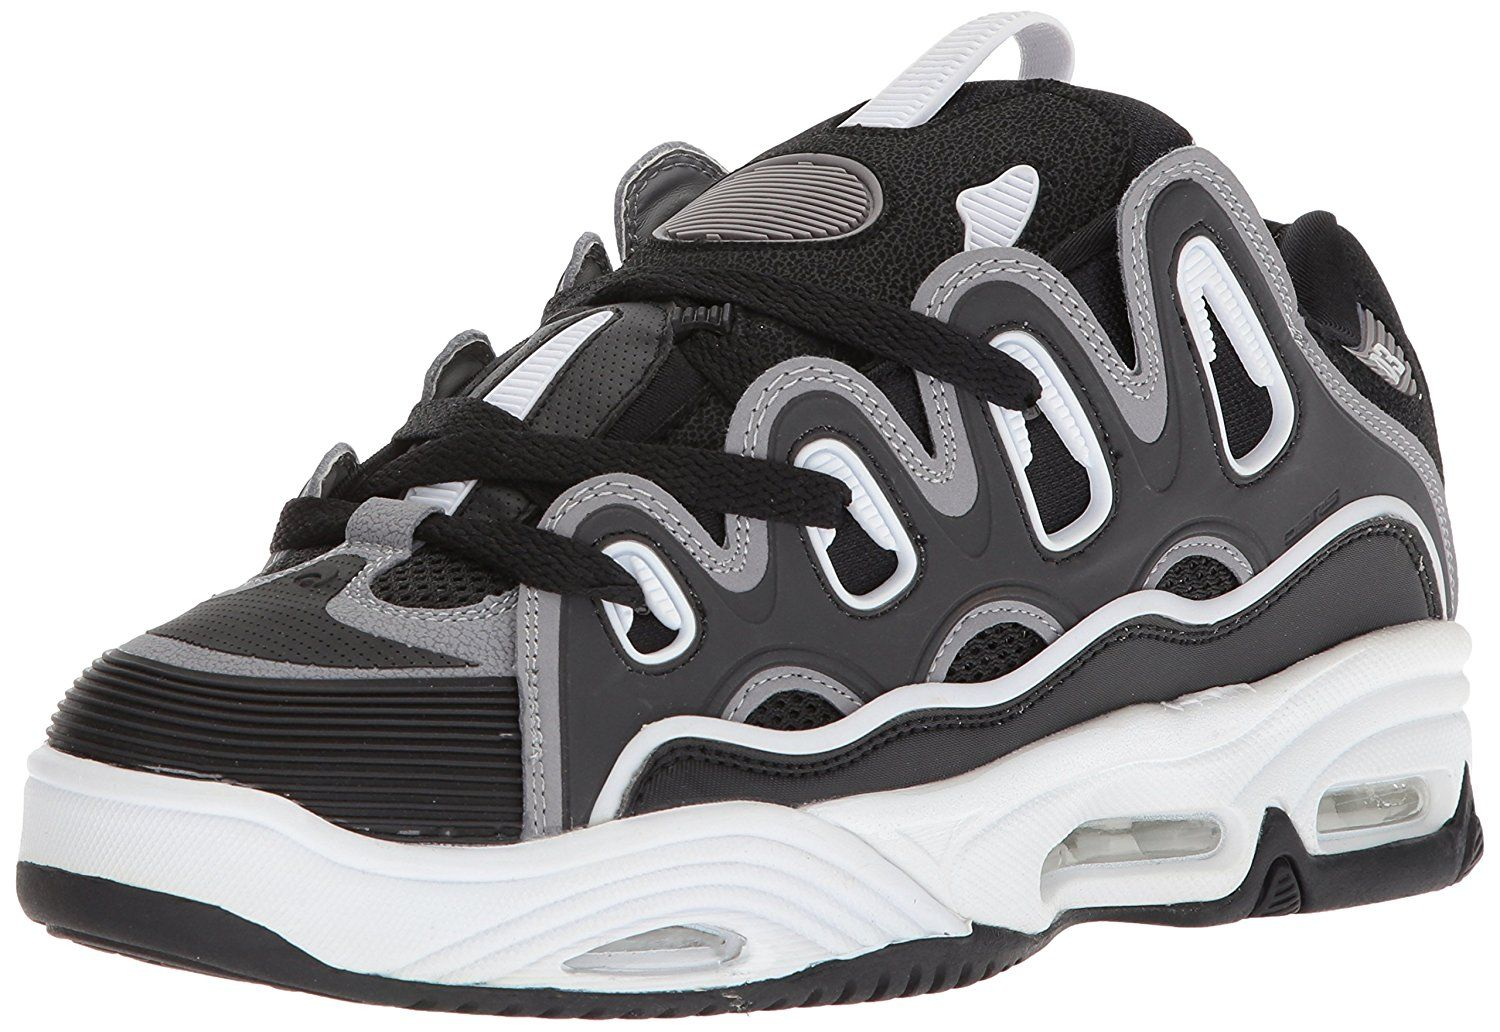 a34e5422f75f52 Osiris Men's D3 2001 Skate Shoe, Black/Grey/White, 5.5 M US: Amazon.ca:  Shoes & Handbags